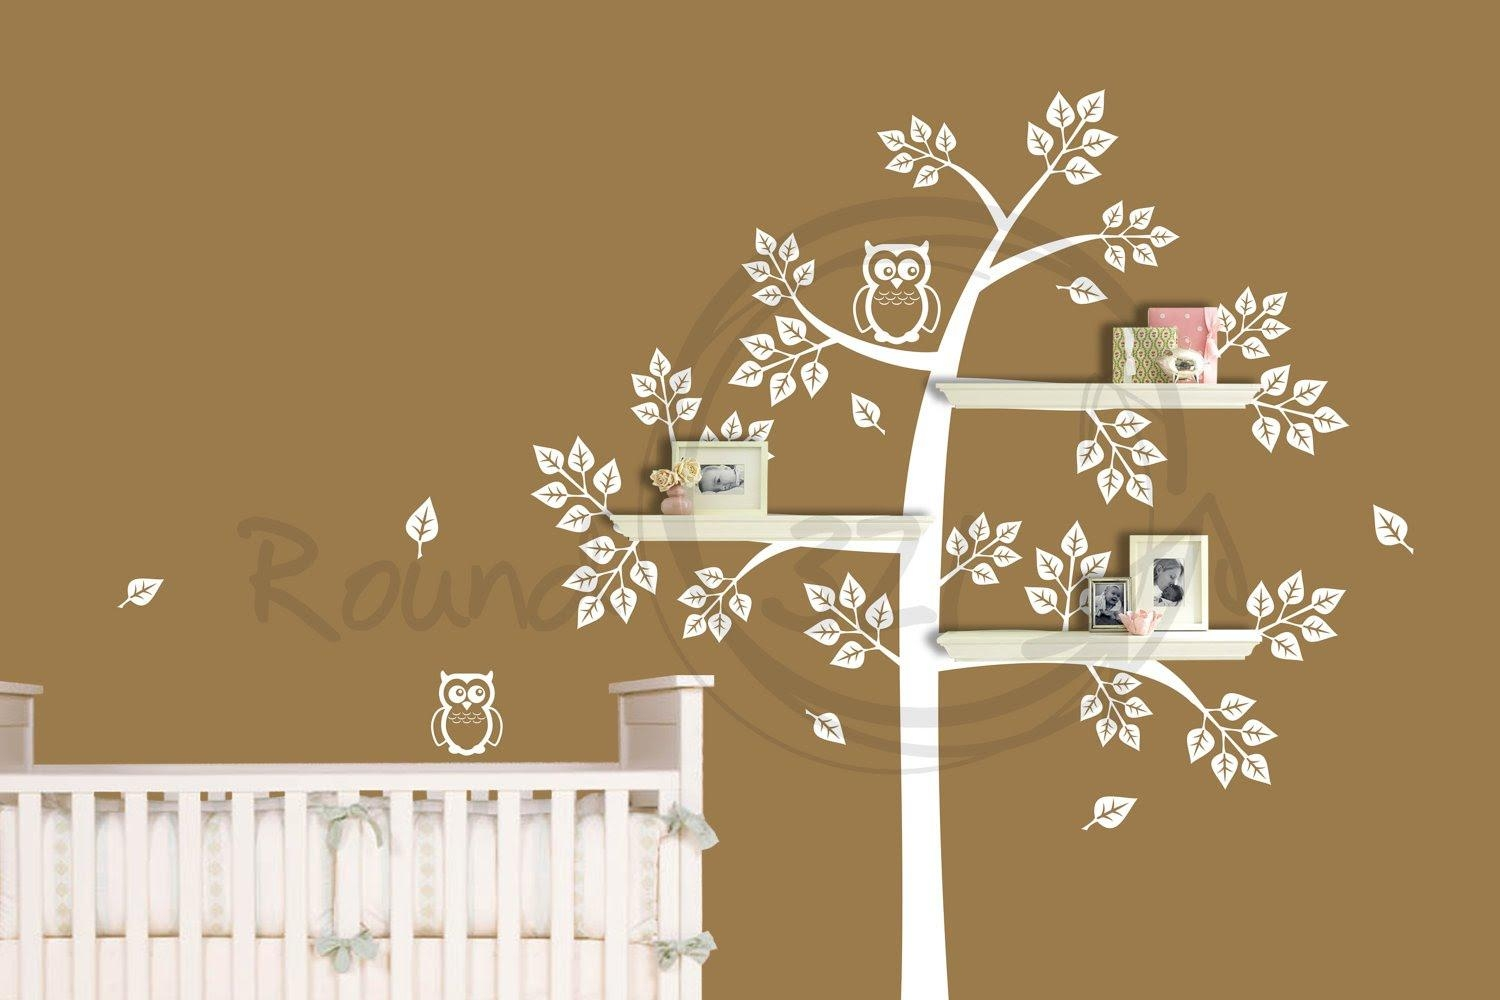 Baby Room Wall Decor~Baby Room Wall Art Ideas – Youtube Regarding Baby Wall Art (View 11 of 20)